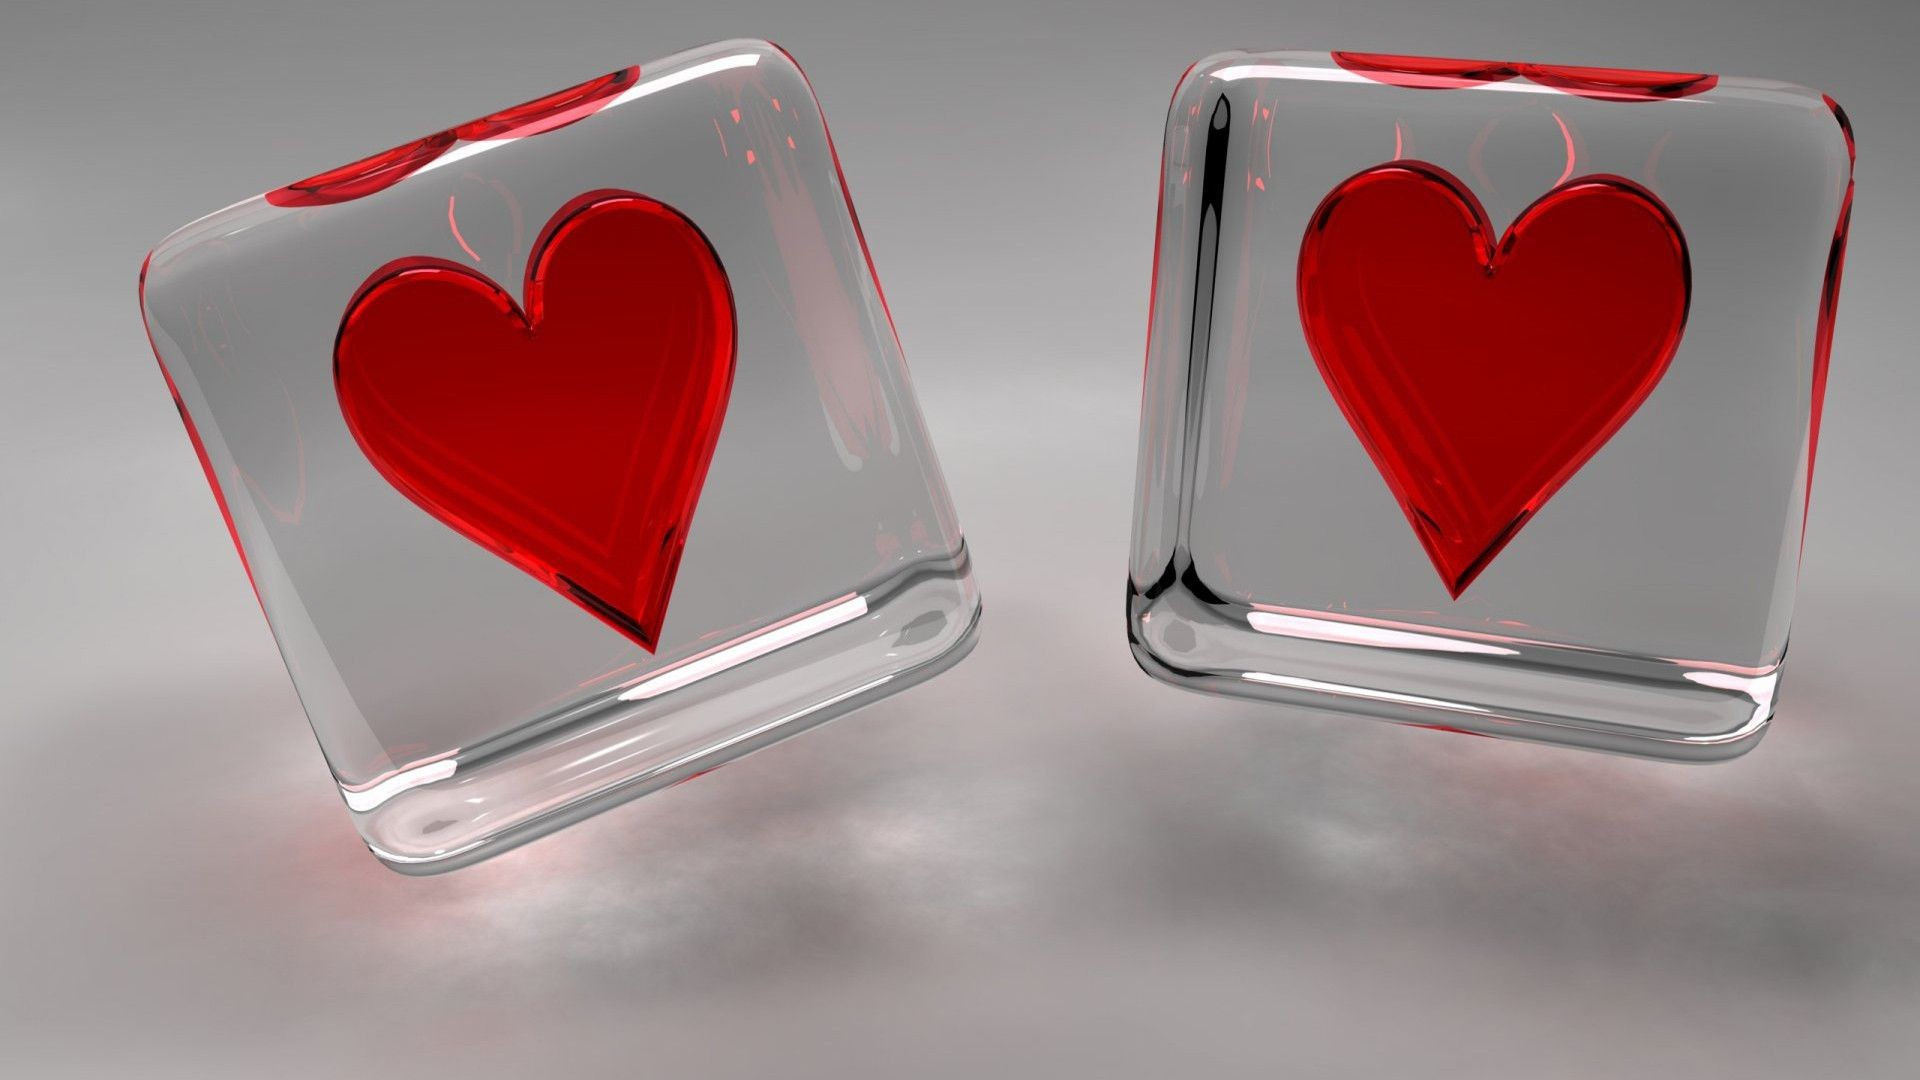 Heart Love Wallpapers Images (59+ background pictures)